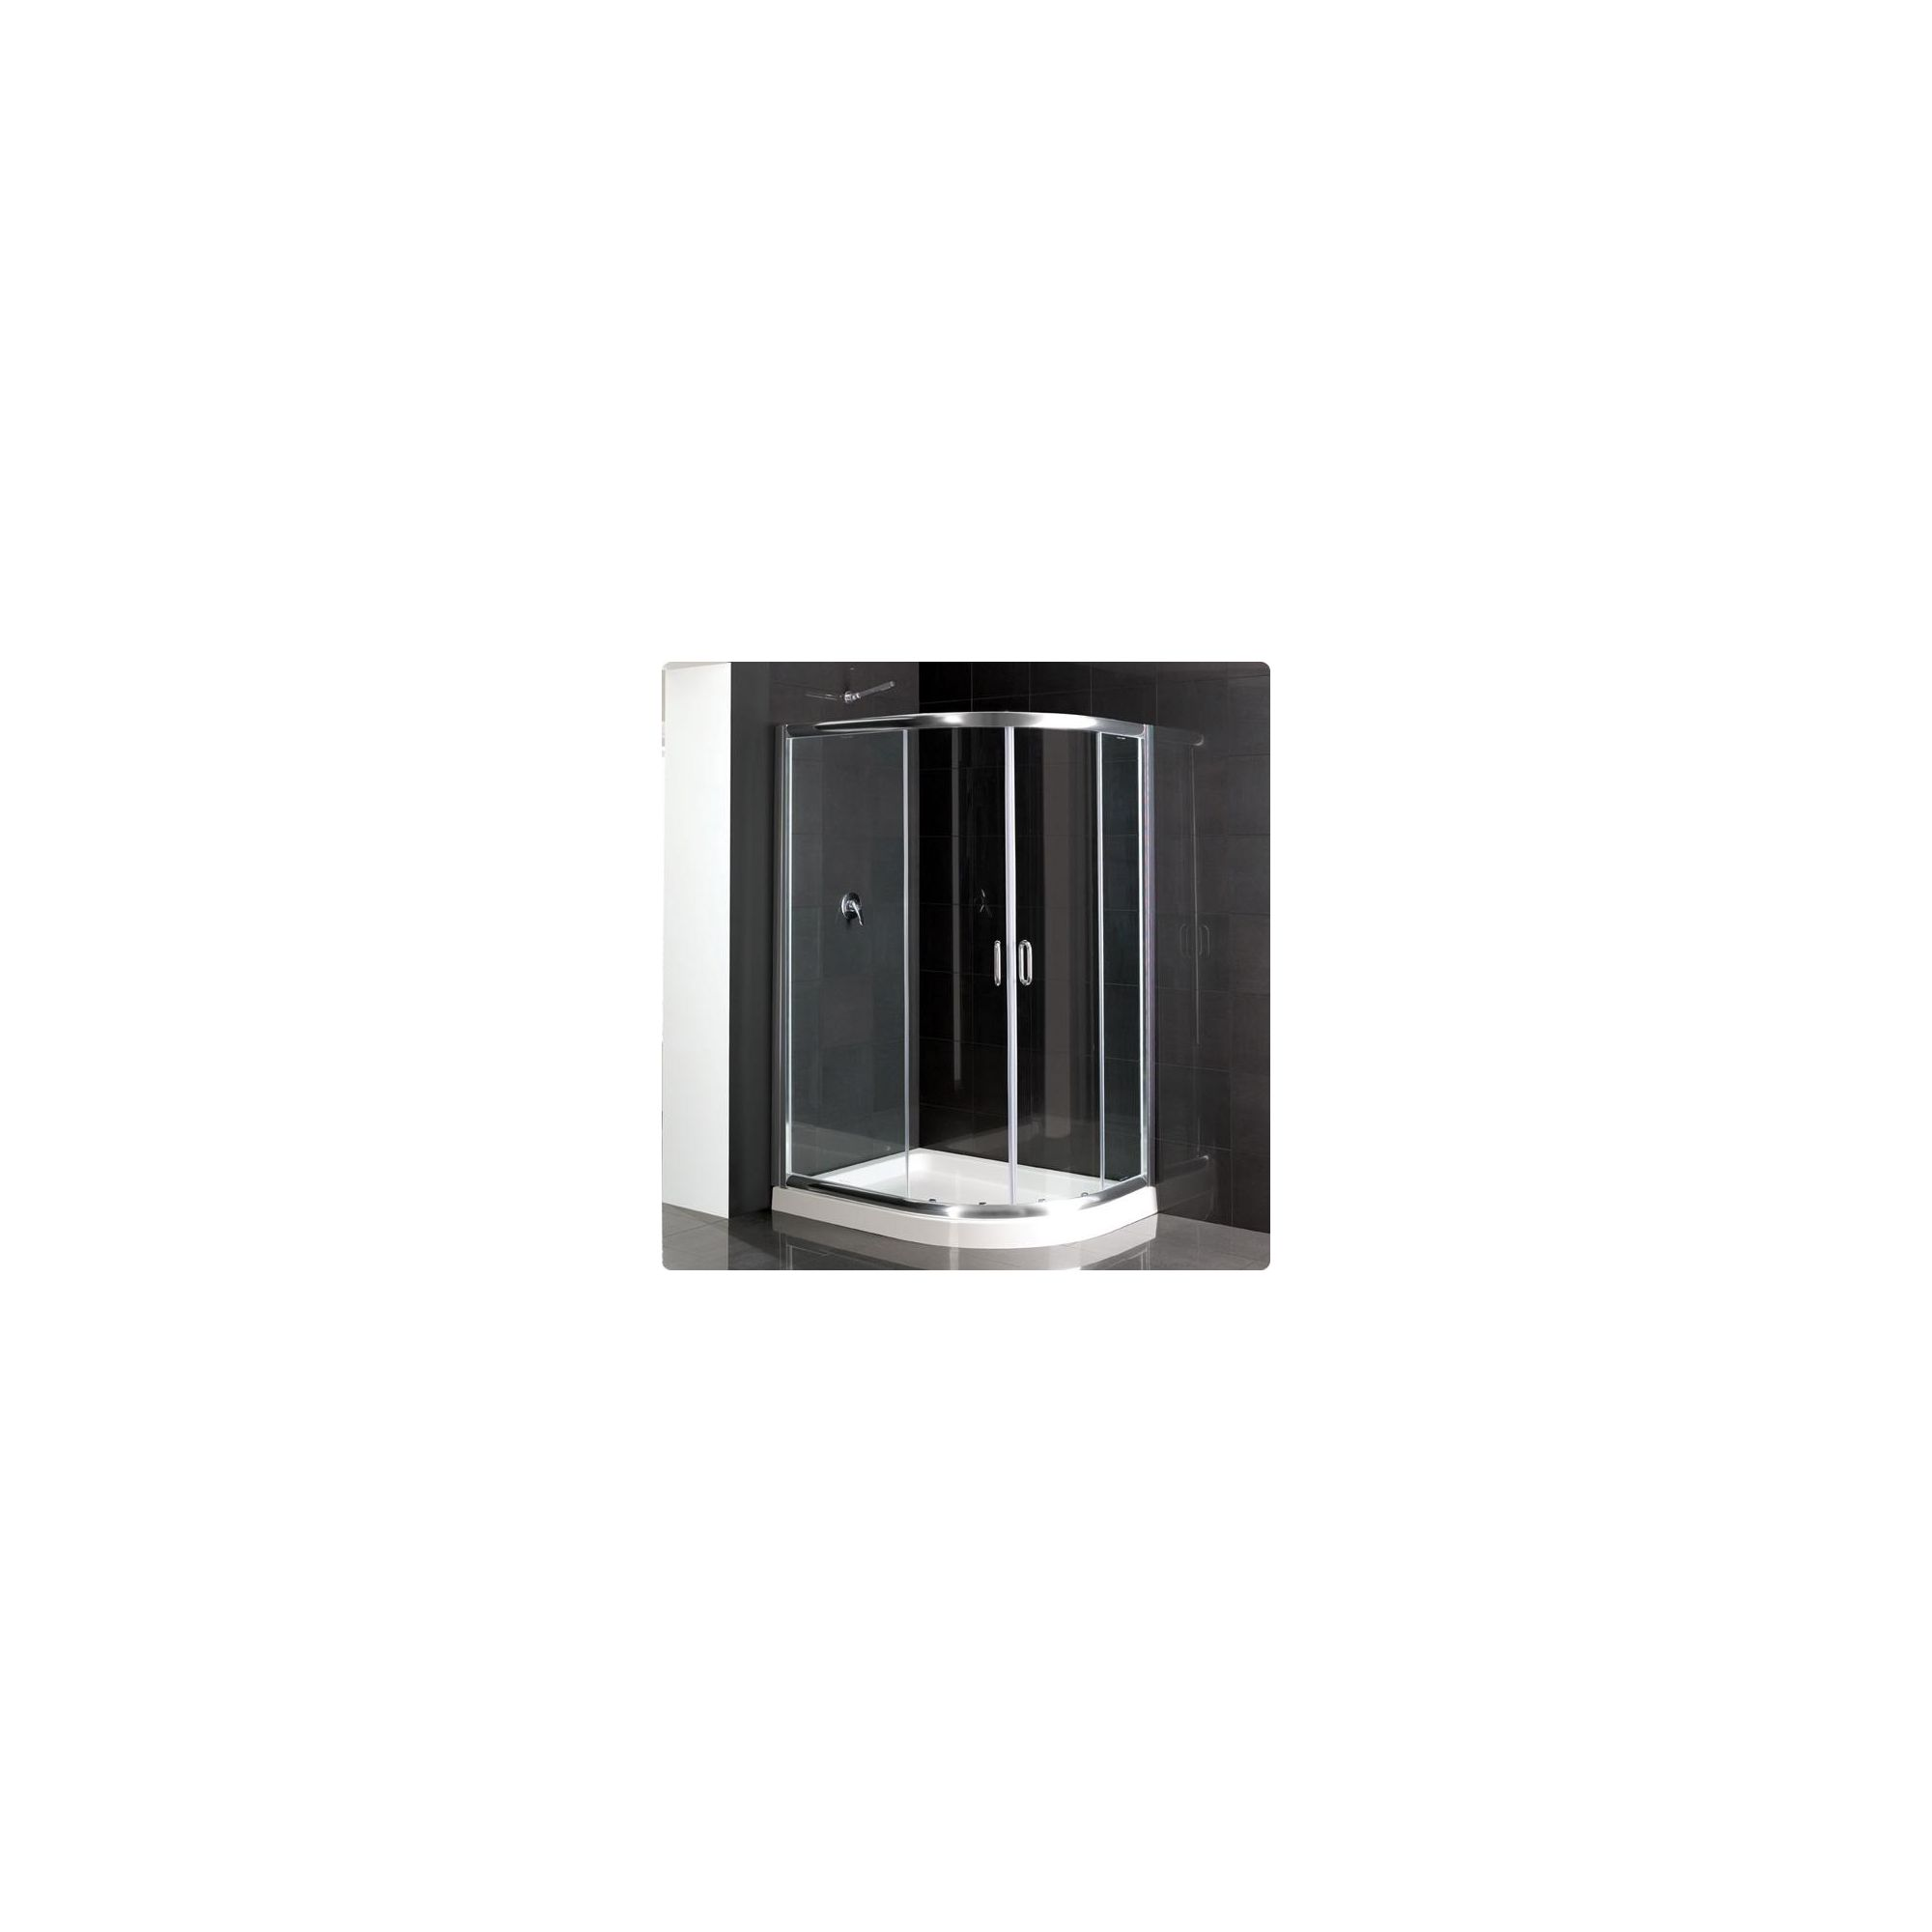 Duchy Elite Silver Offset Quadrant Shower Enclosure (Complete with Tray) 1000mm x 800mm, 6mm Glass at Tesco Direct